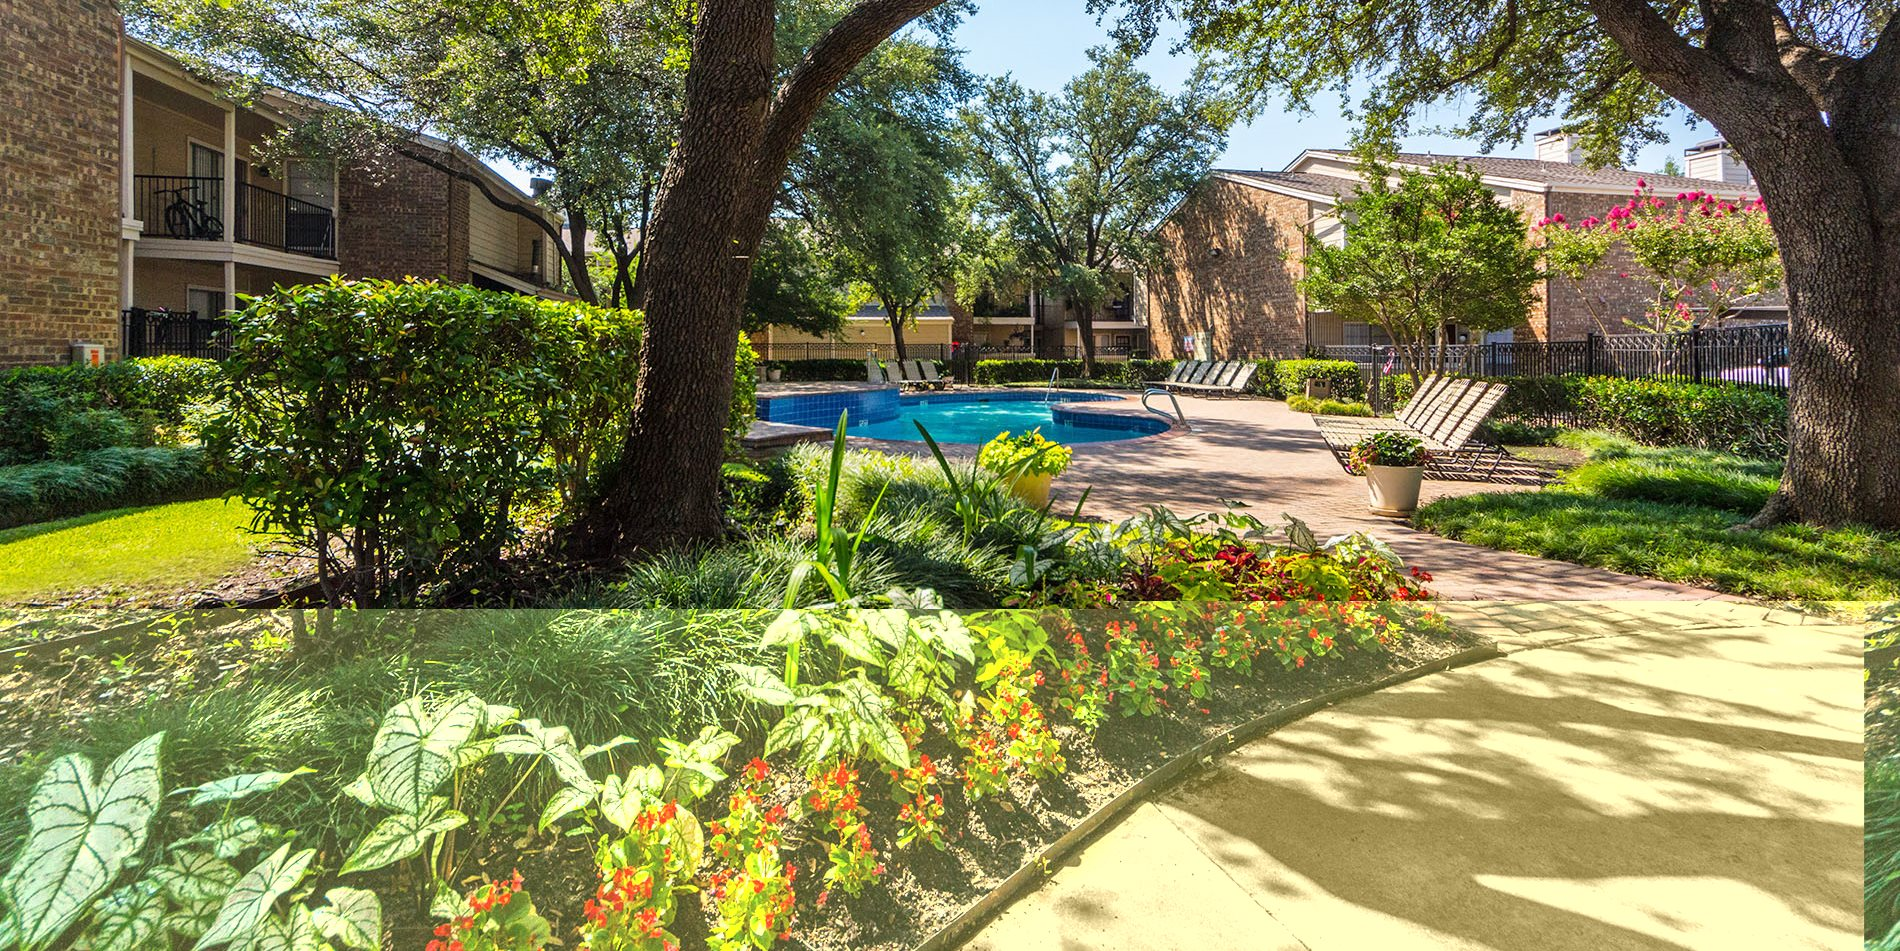 Landscaping at Davenport Apartments in Dallas, Texas, TX